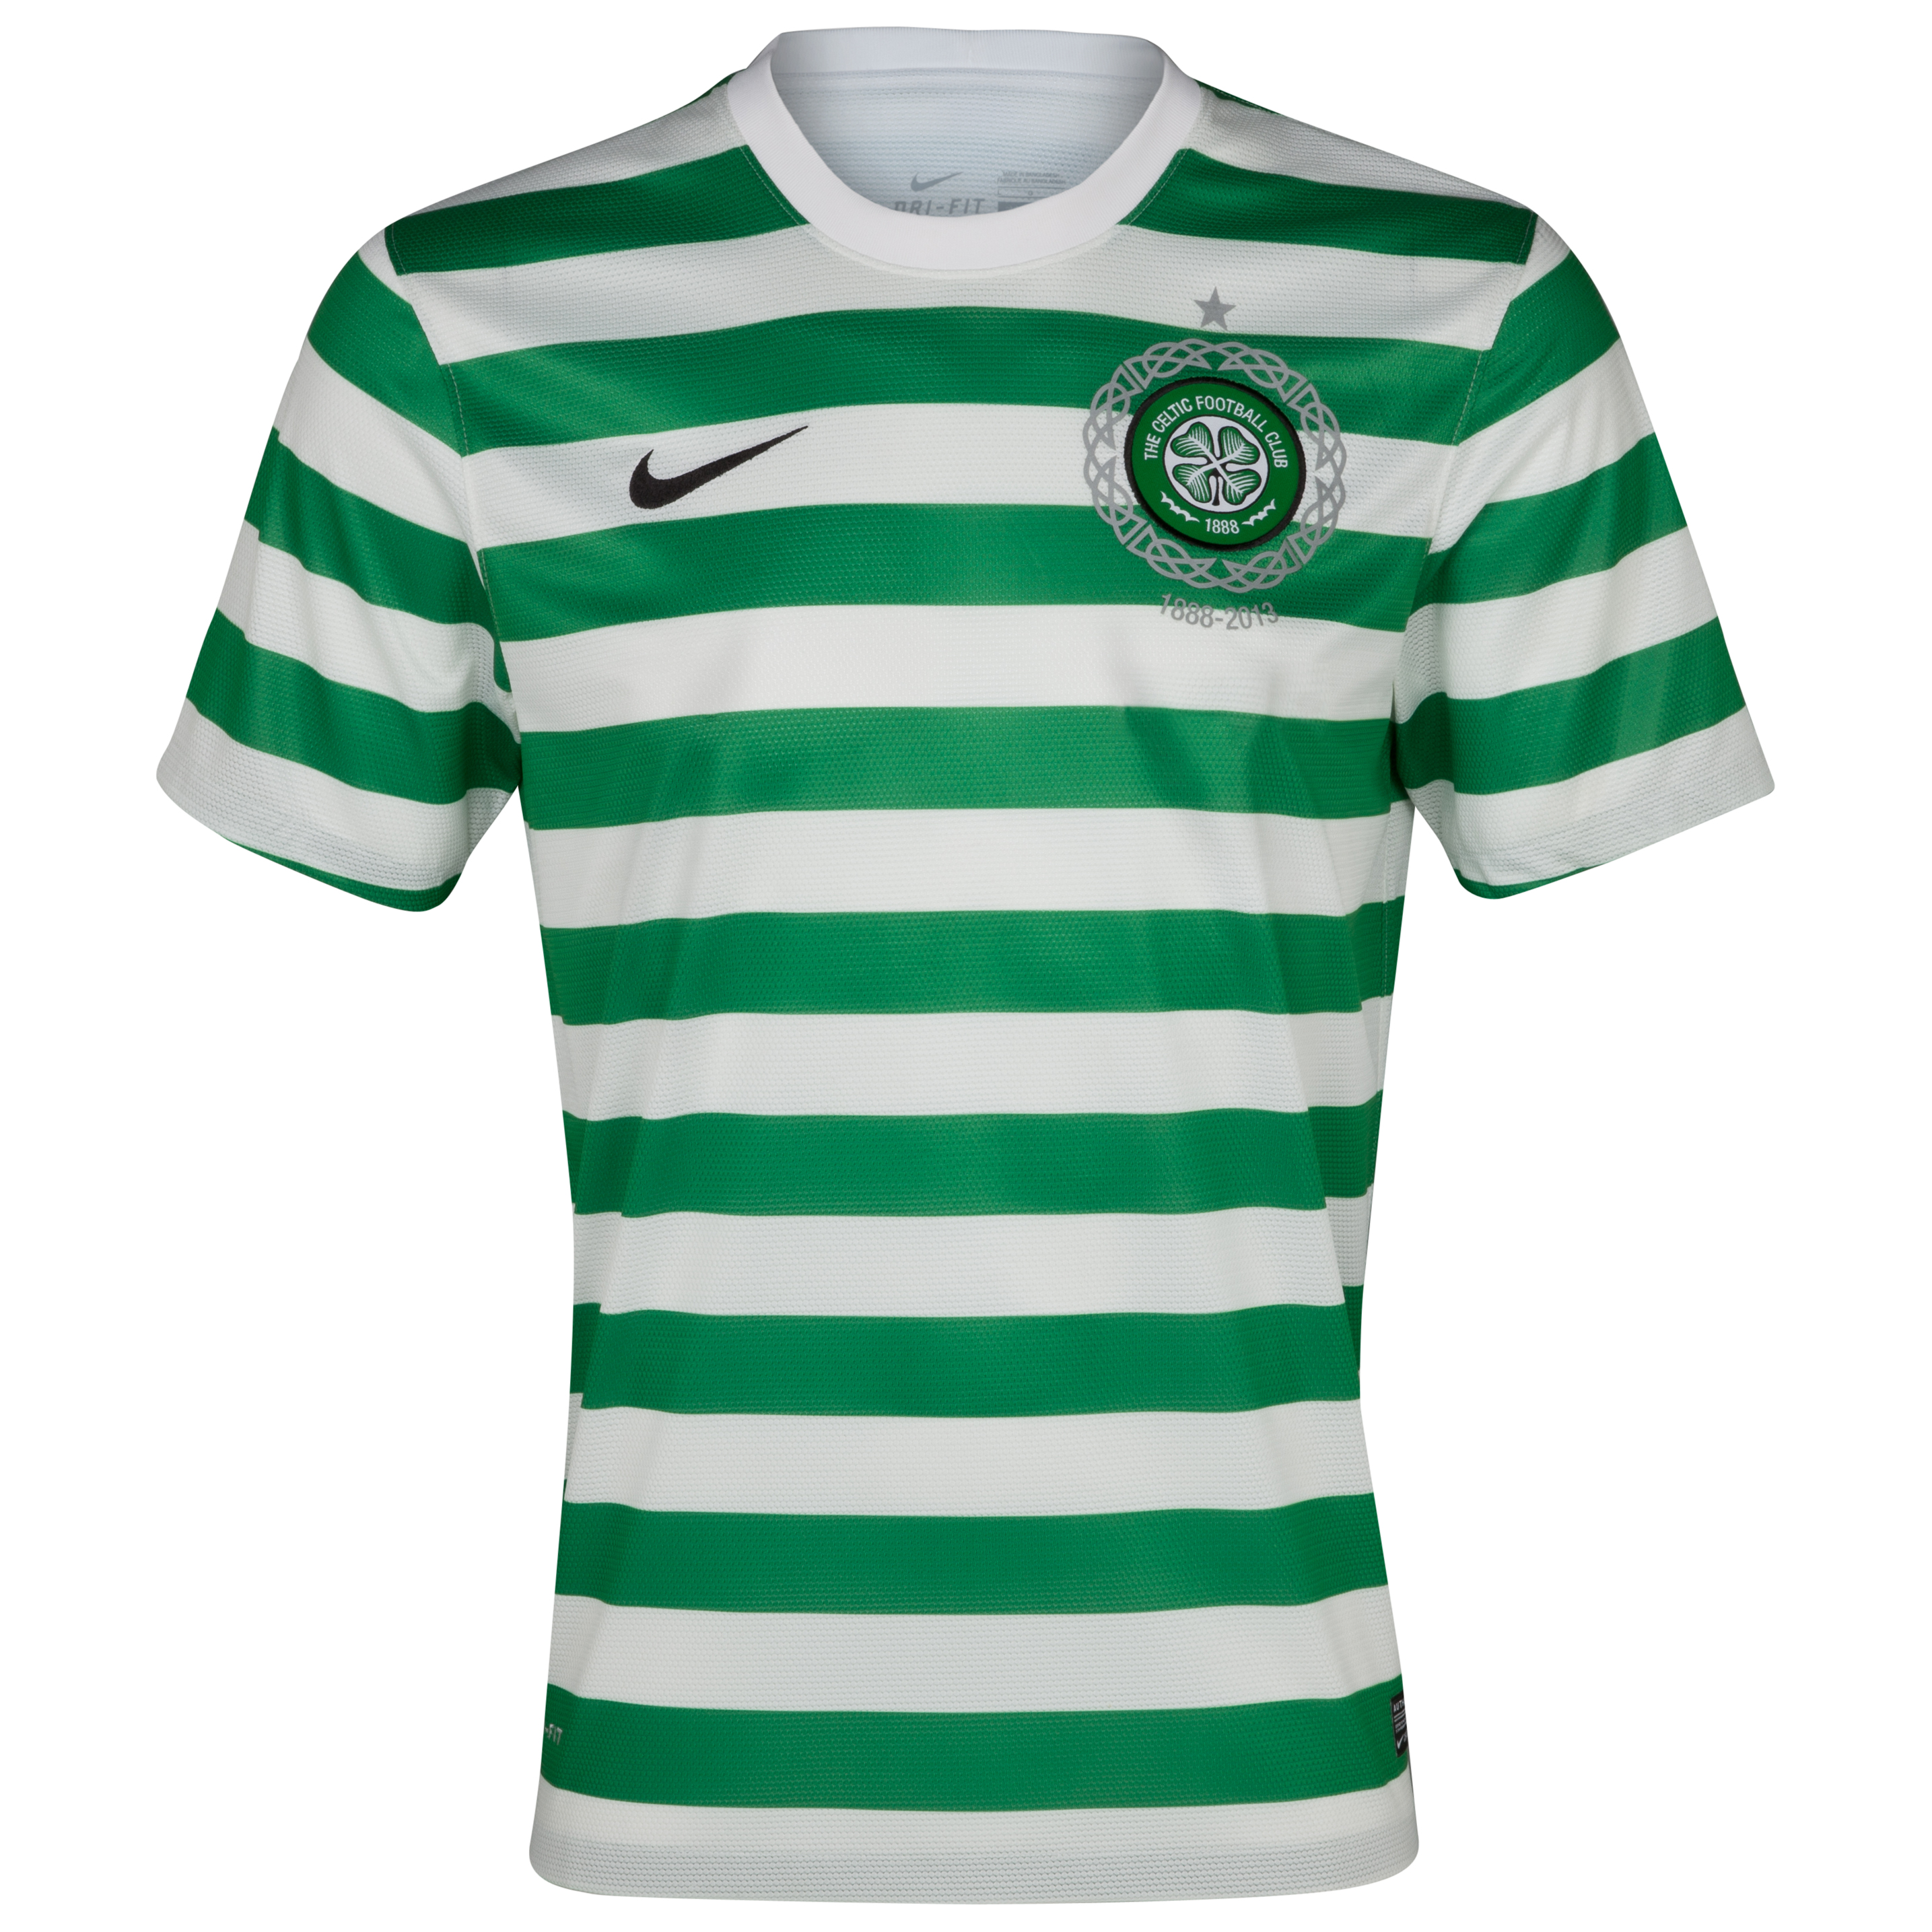 Celtic Home Shirt 2012/13 -  Youths